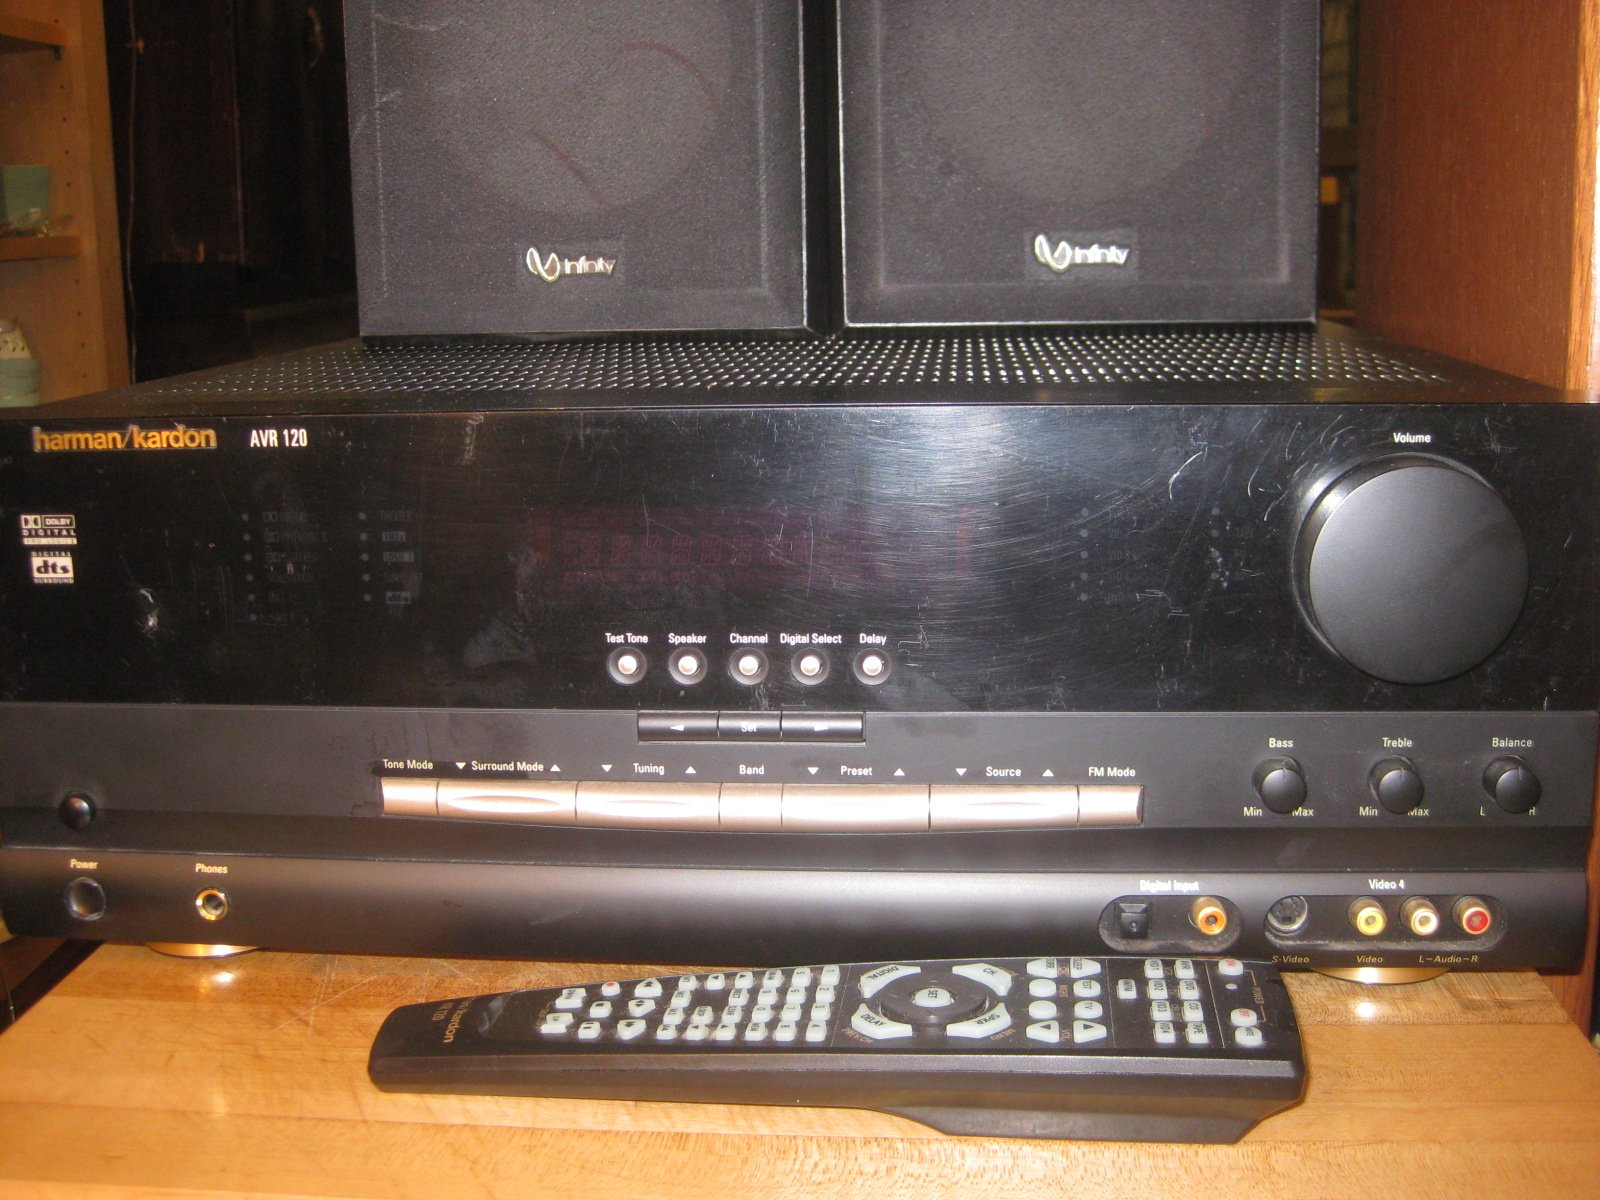 Harman Kardon Avr 120 Home Theater Receiver For Parts Or Repair On